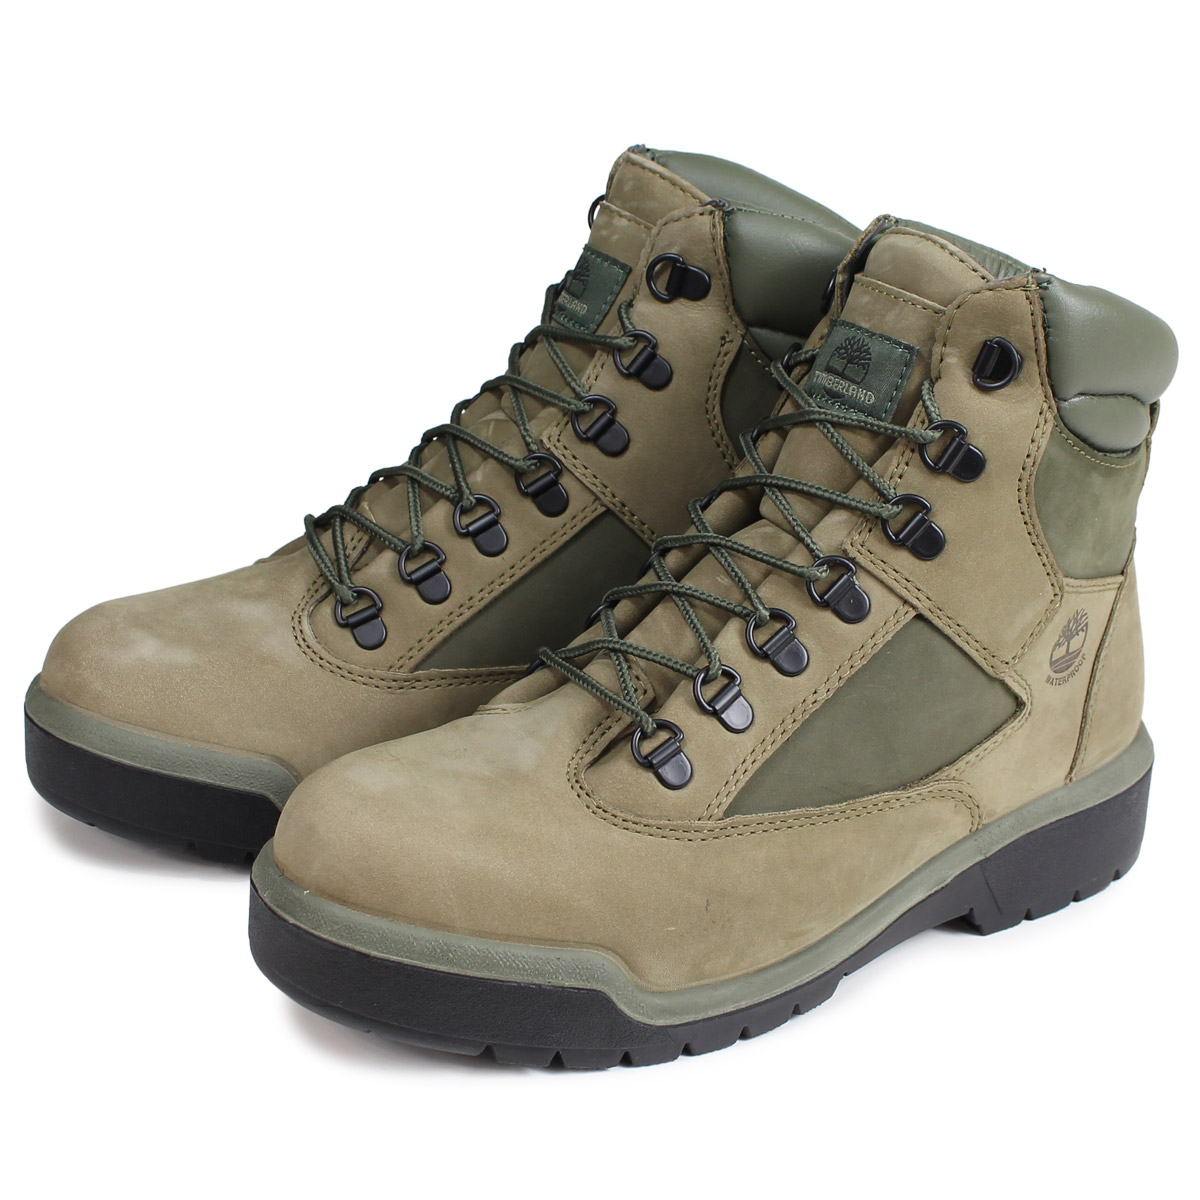 09b7efb94 Green Timberland Boots Mens - Best Picture Of Boot Imageco.Org